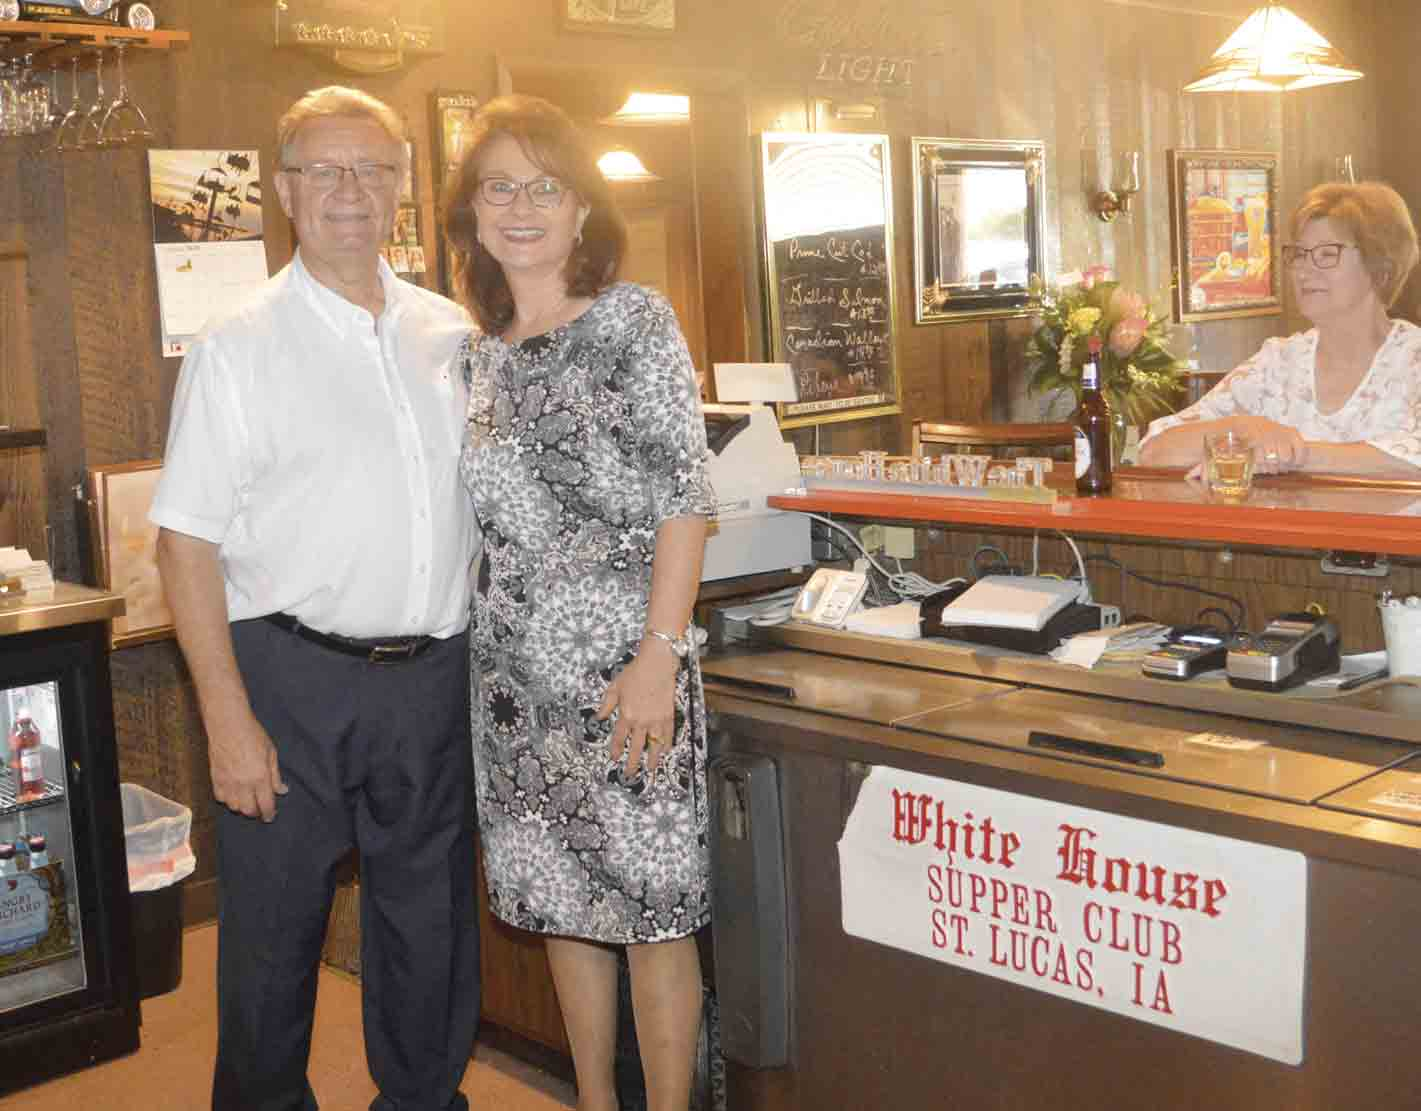 For 42 years, St. Lucas natives John and Jann Kuehner have owned and operated The White House Supper Club in St. Lucas. The well-known establishment, which attracted customers from all throughout northeast Iowa on a nightly basis, officially closed its doors Friday evening. (Zakary Kriener photo...